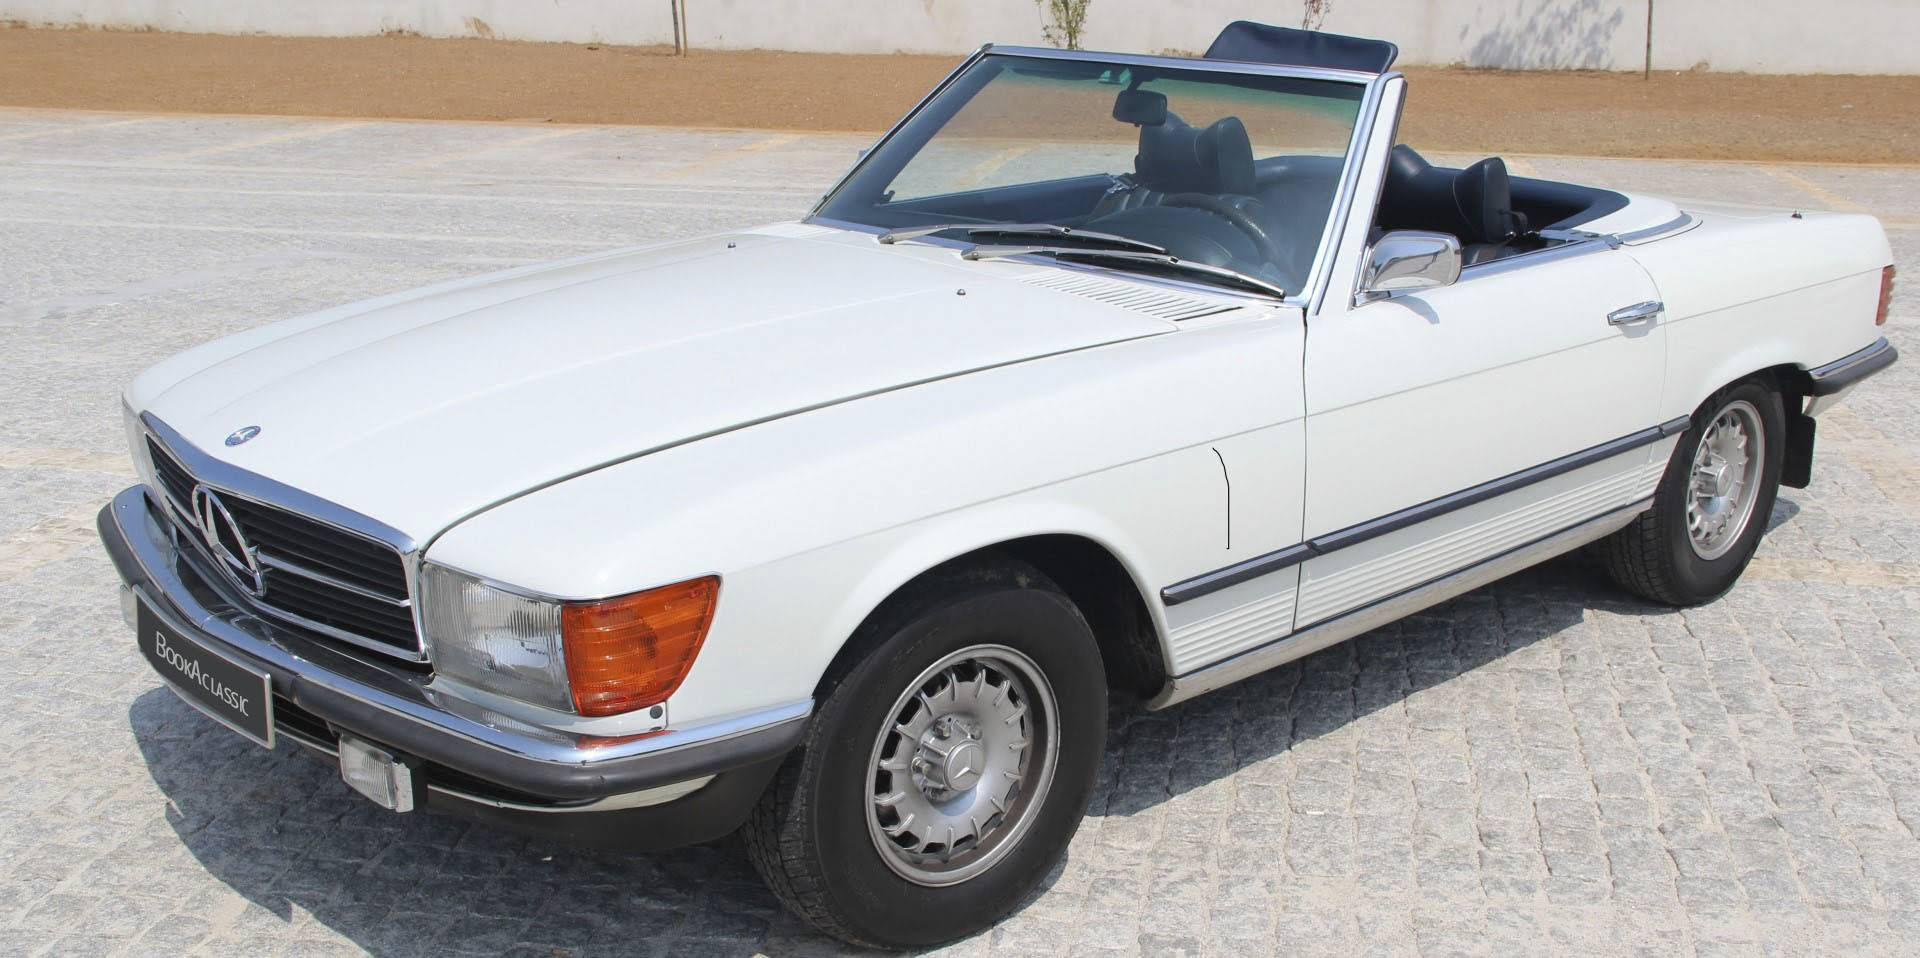 Mercedes benz sl 350 for hire in antas bookaclassic for Mercedes benz sl 350 price